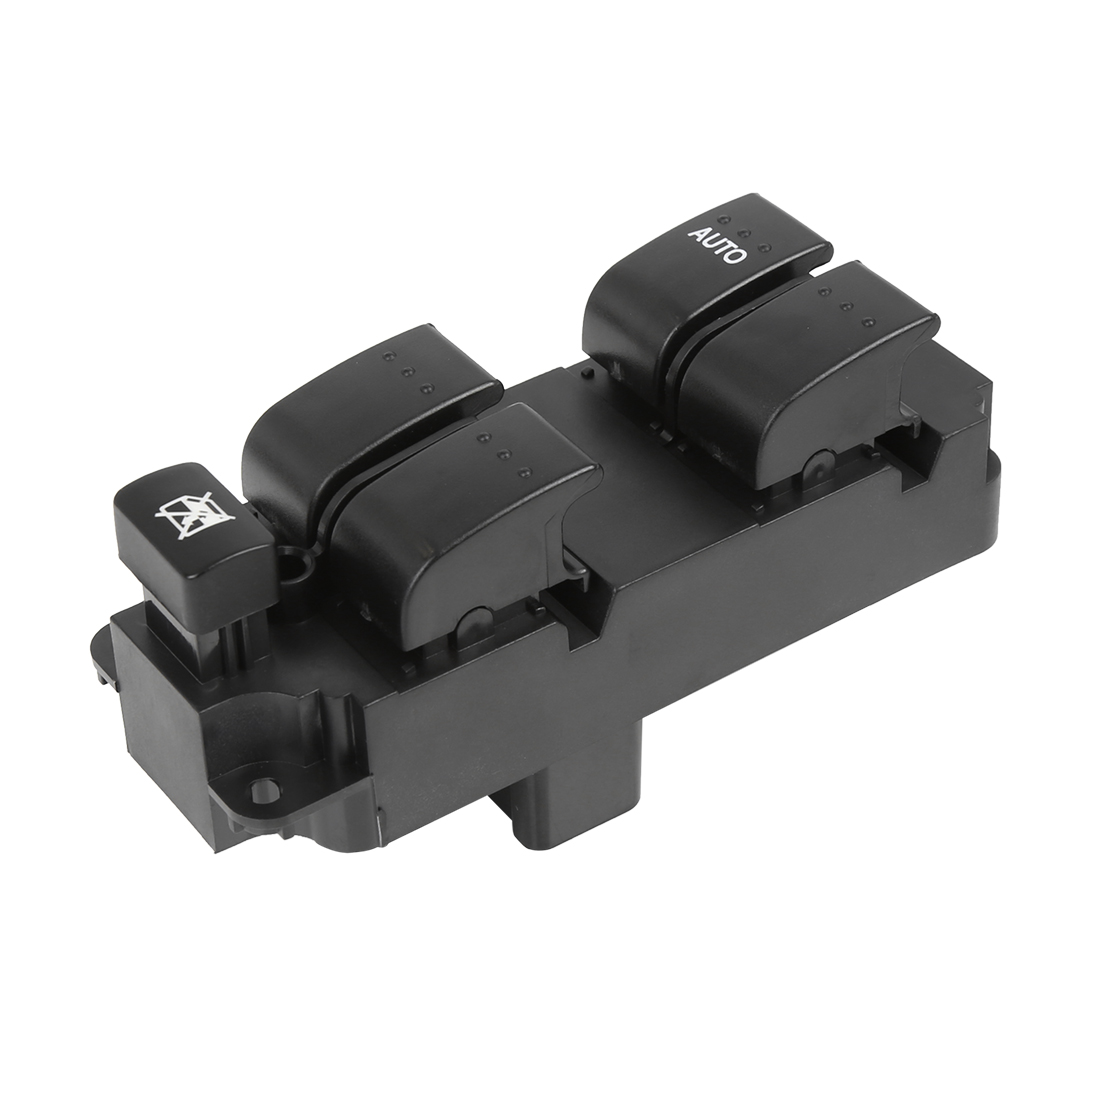 BN8F-66-350A Car Power Window Master Switch Driver Side for 2004-2009 Mazda 3